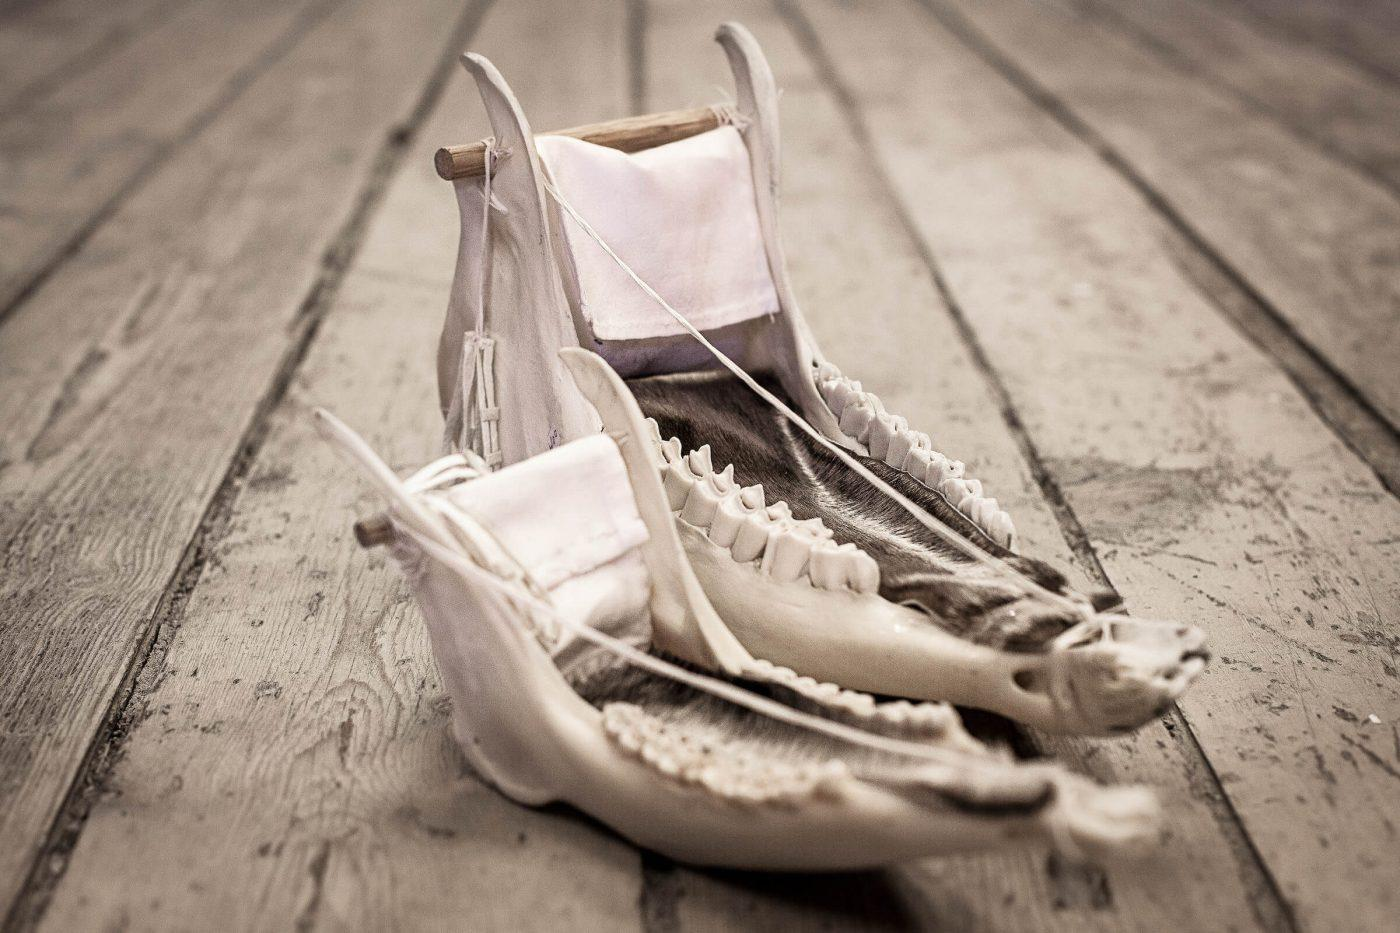 Dog sleds made from animal jaws by Pauline from Sisimiut in Greenland, by Mads Pihl